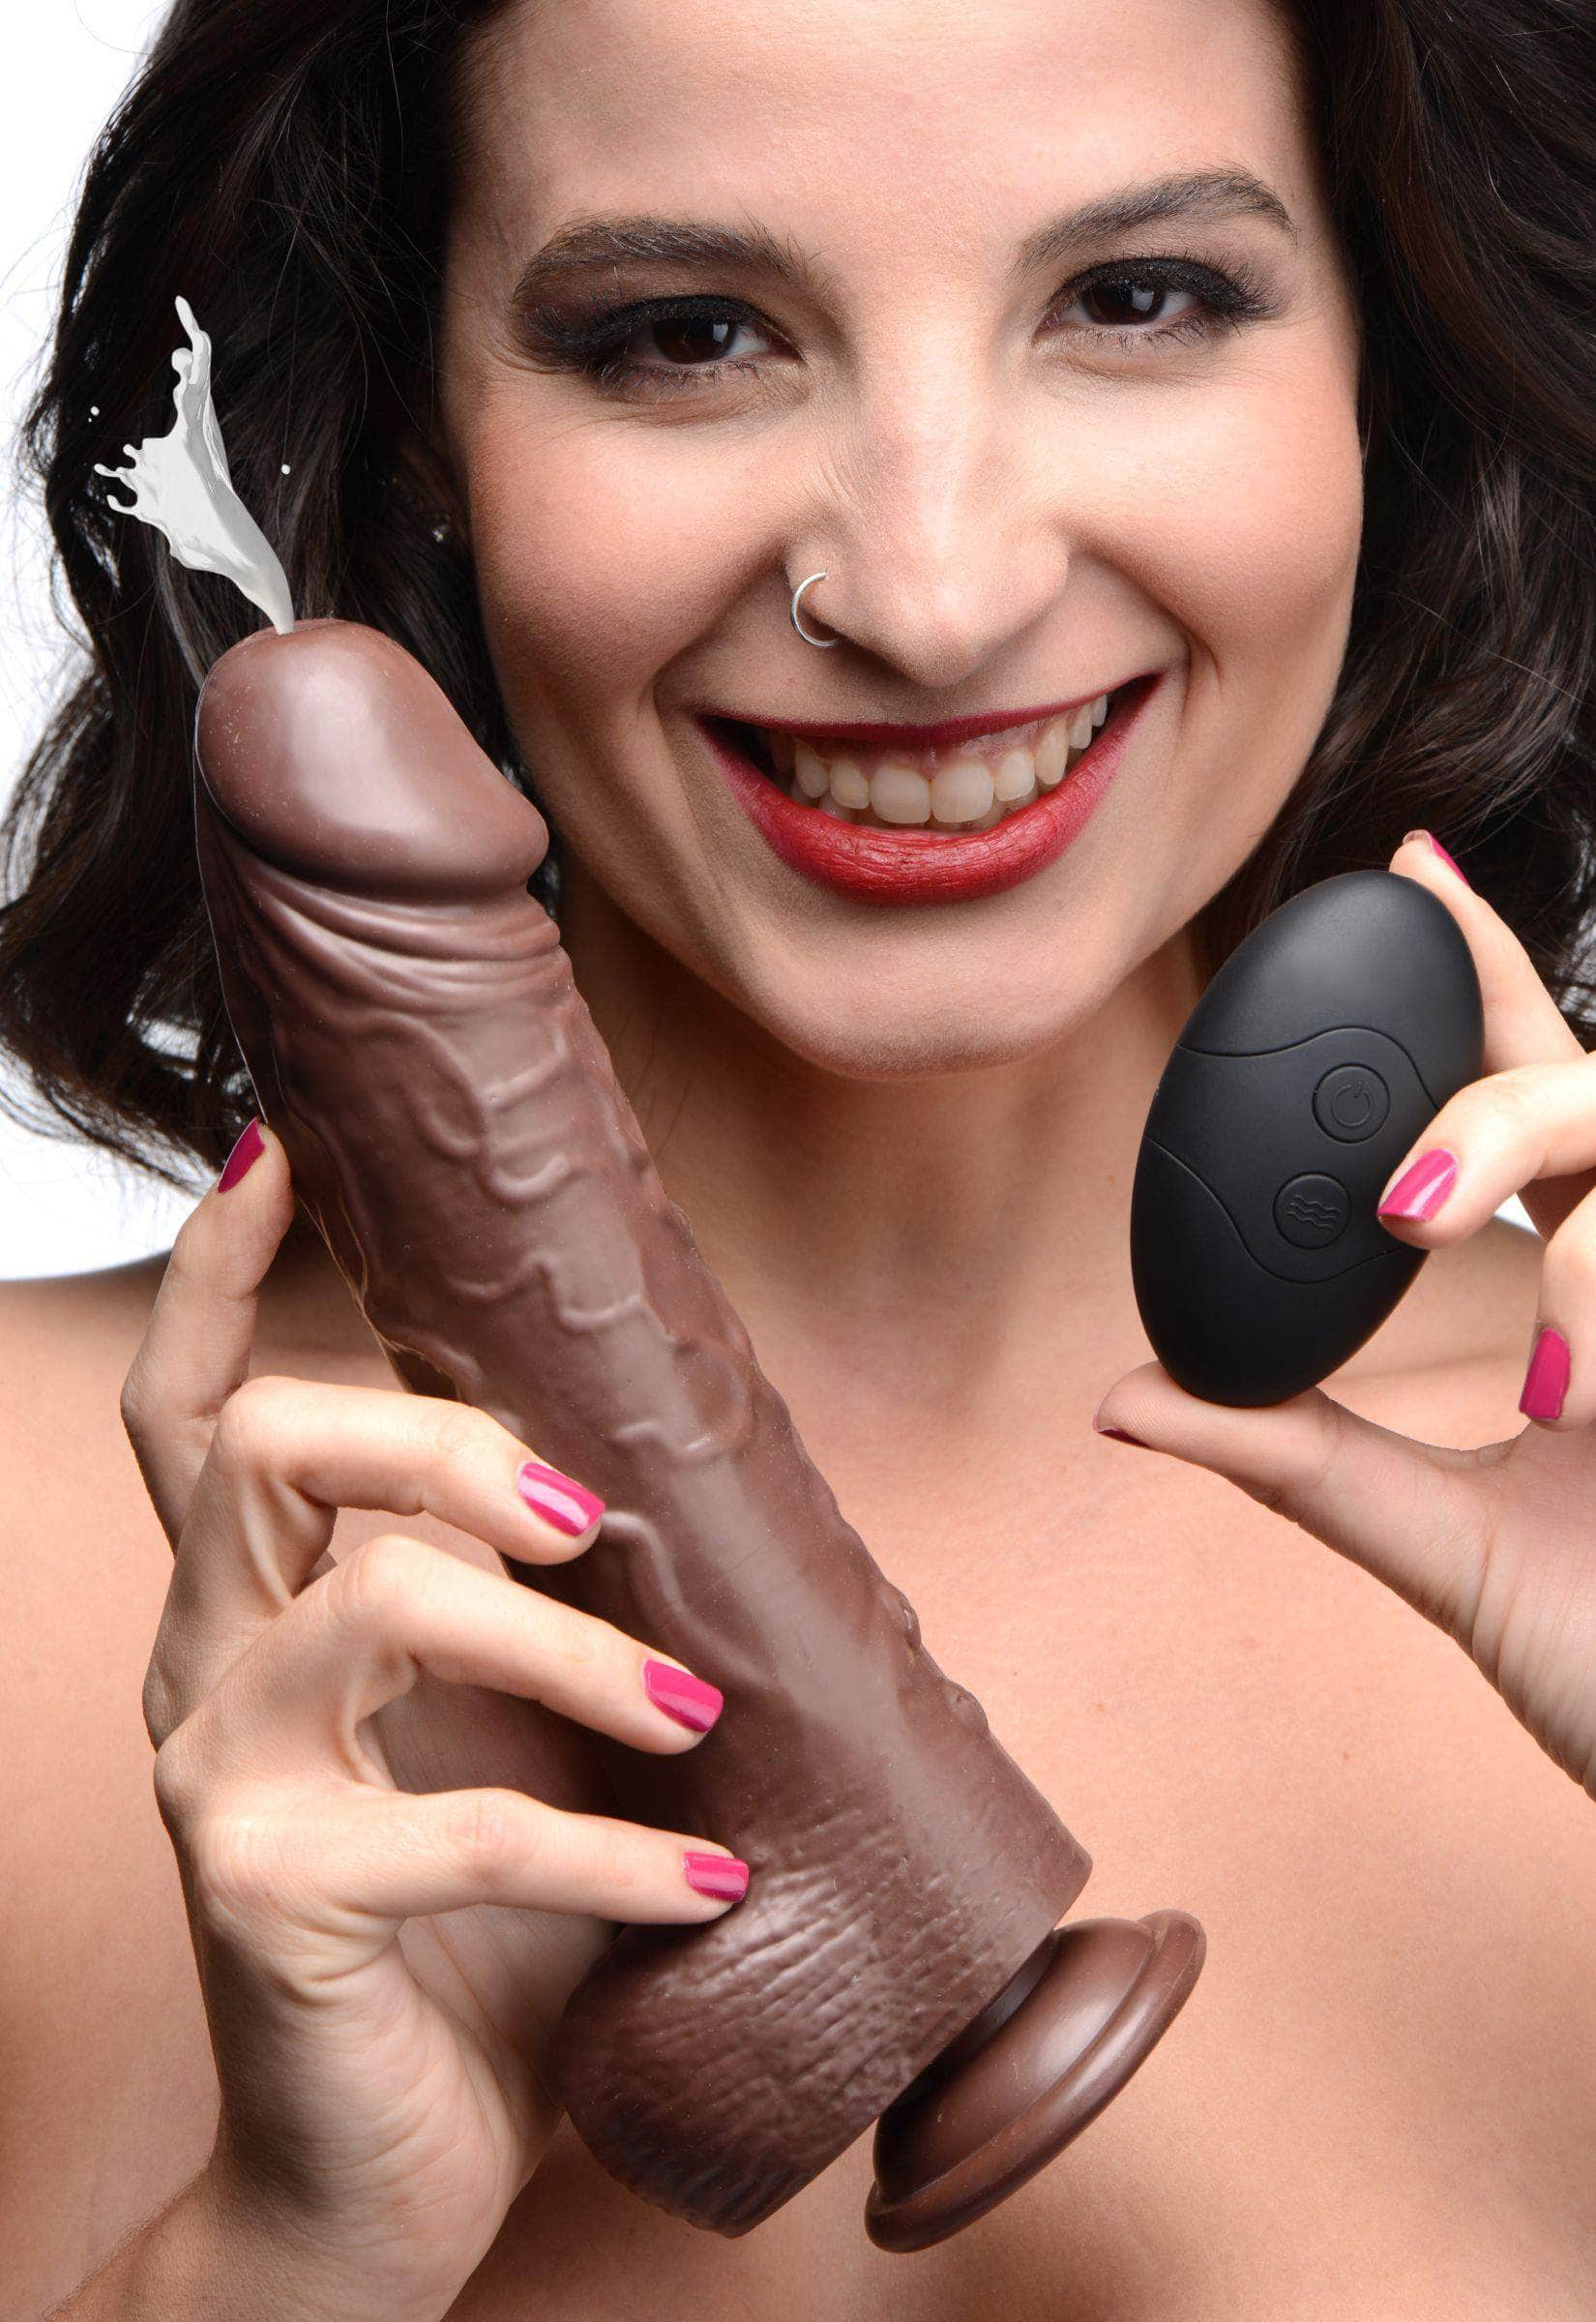 7 Inch Vibrating Squirting Dildo With Remote Control - Dark